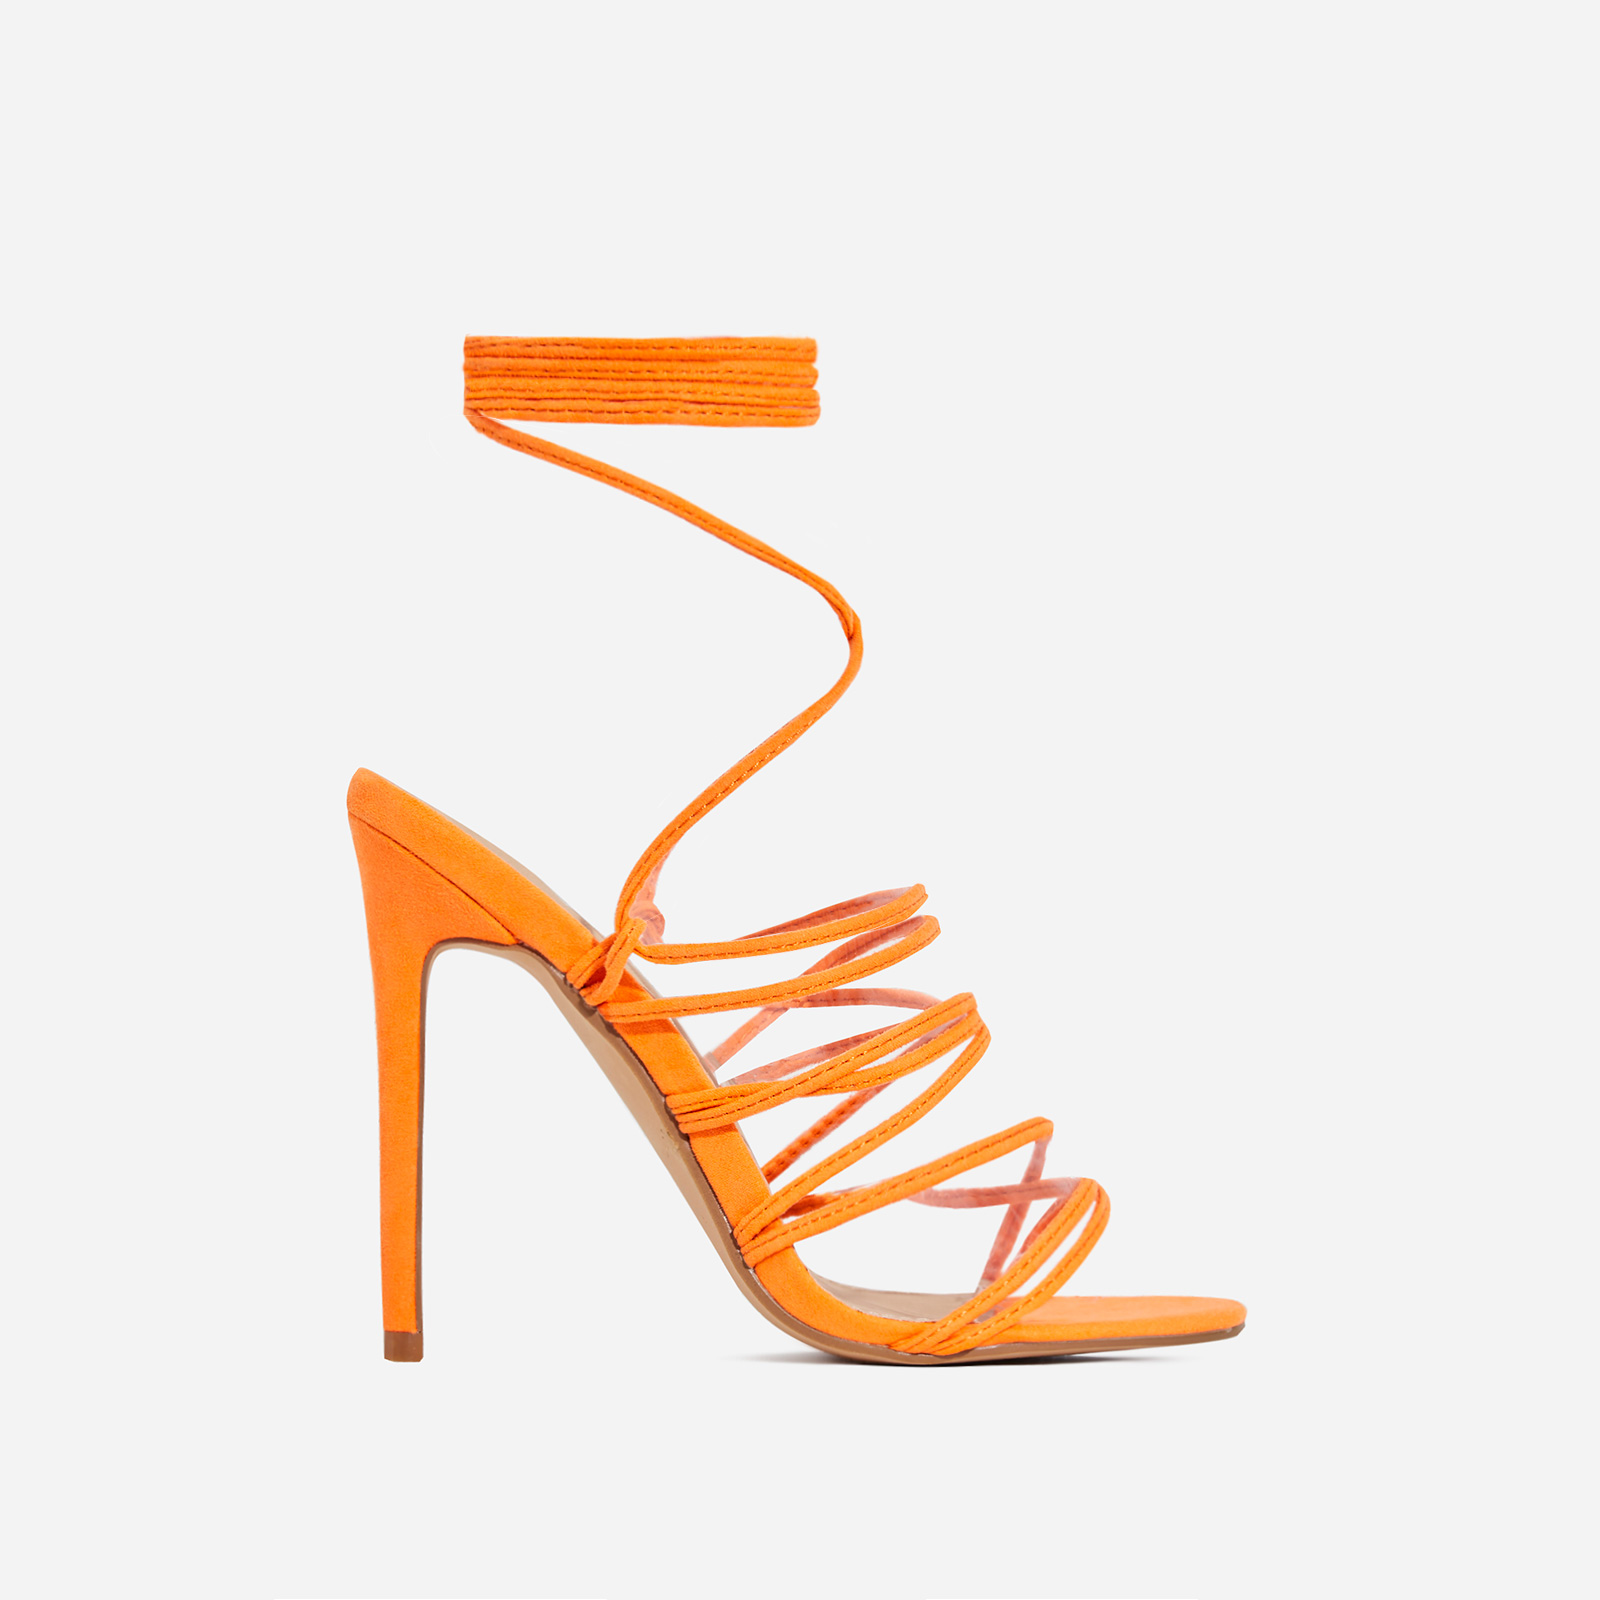 Revel Lace Up Square Toe Heel In Neon Orange Faux Suede